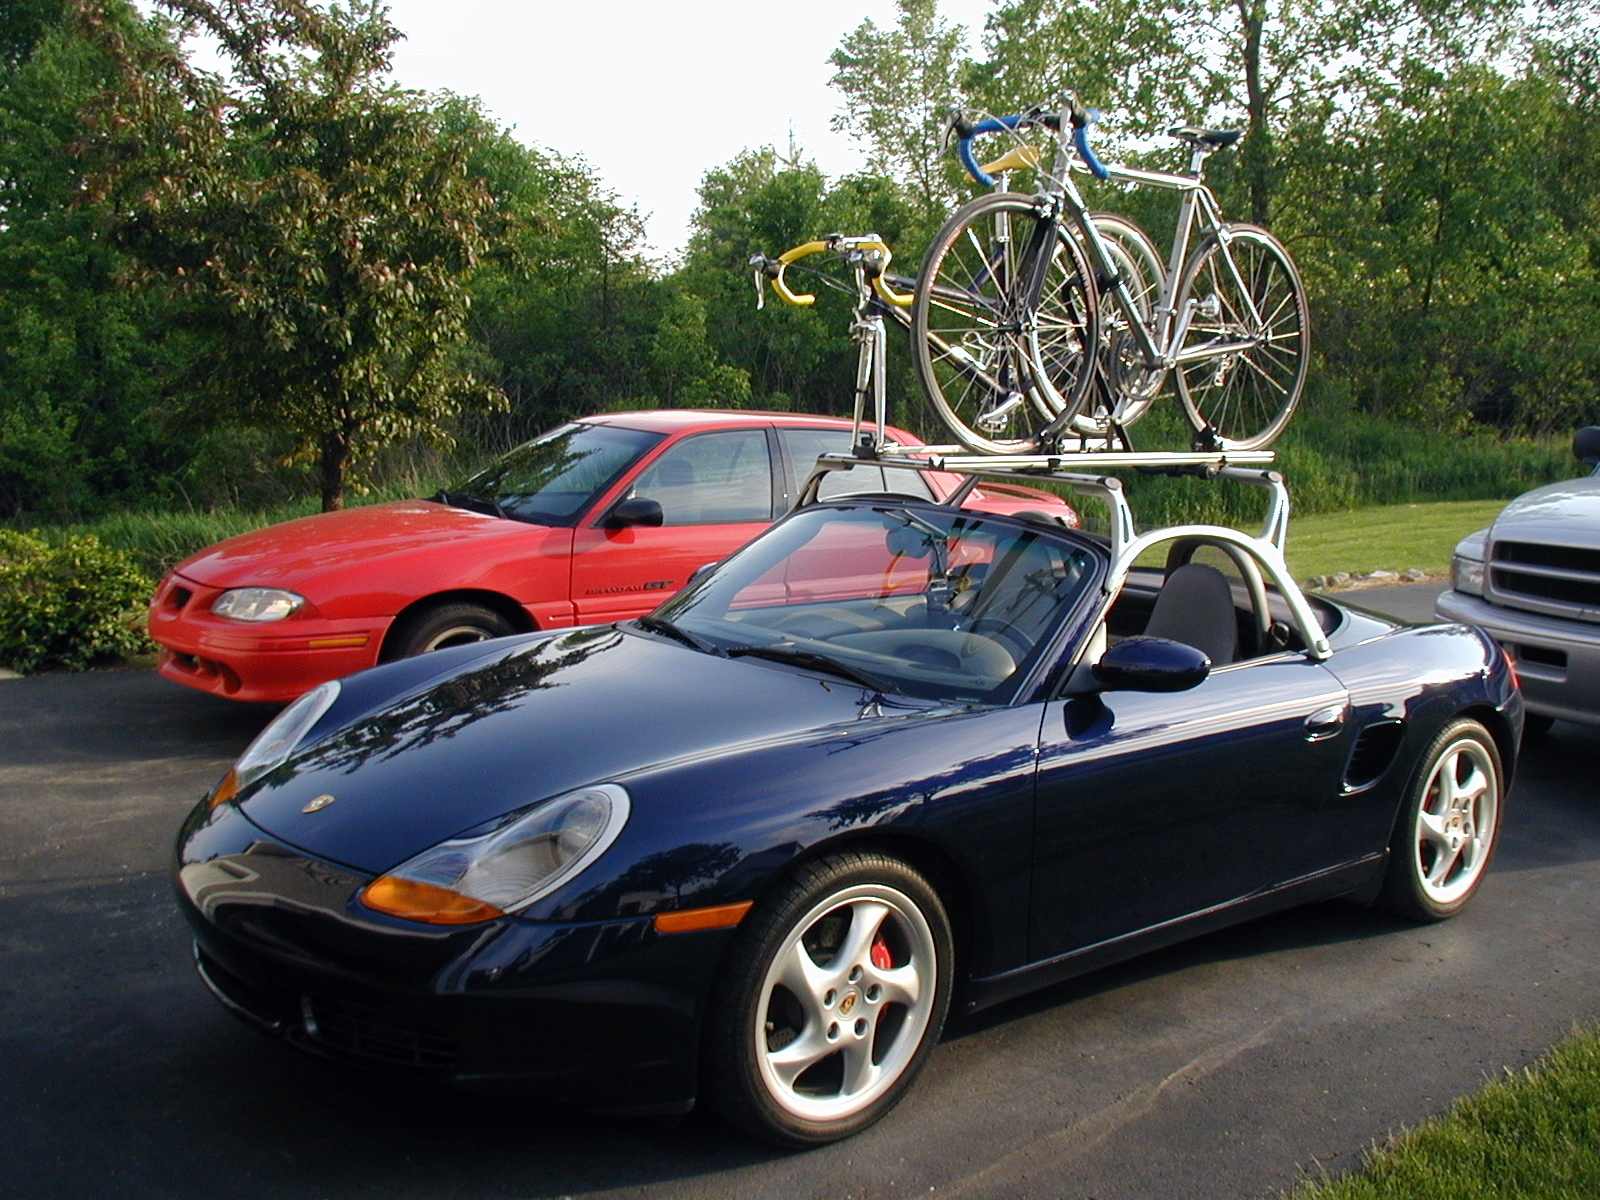 tsoderqu 2001 porsche boxster specs photos modification. Black Bedroom Furniture Sets. Home Design Ideas